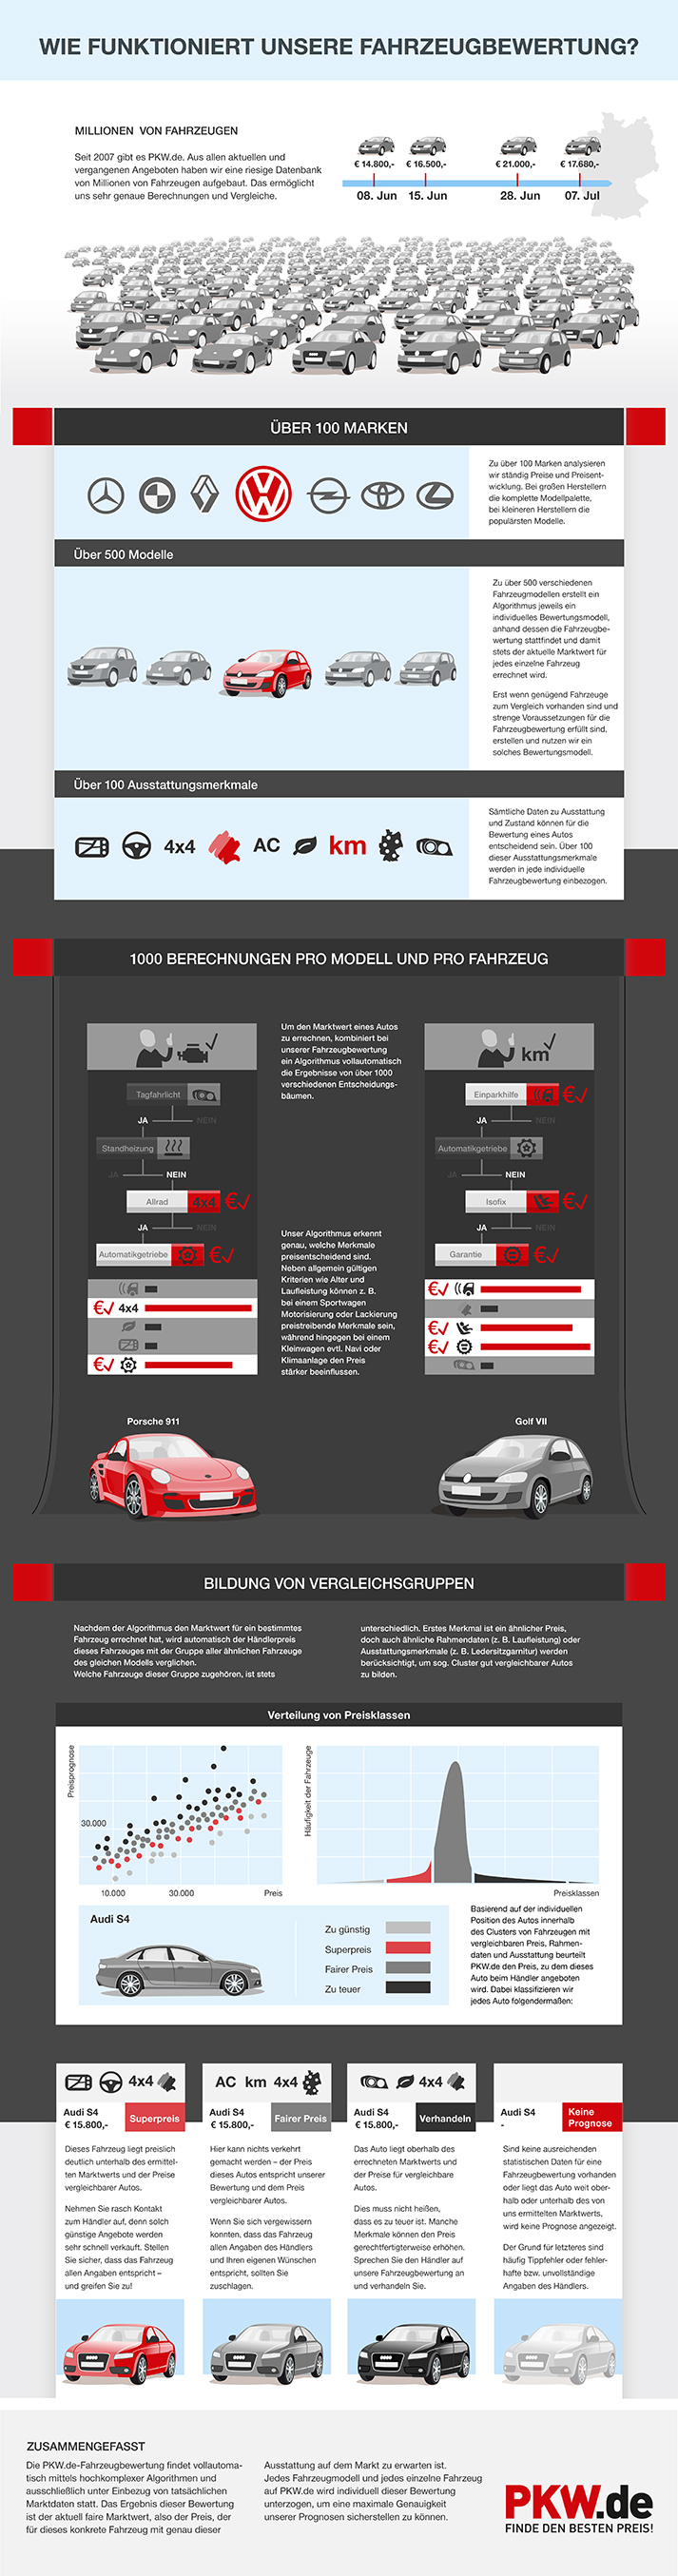 0701_ixtract_viral-social-media-infographic_PKWDE_713